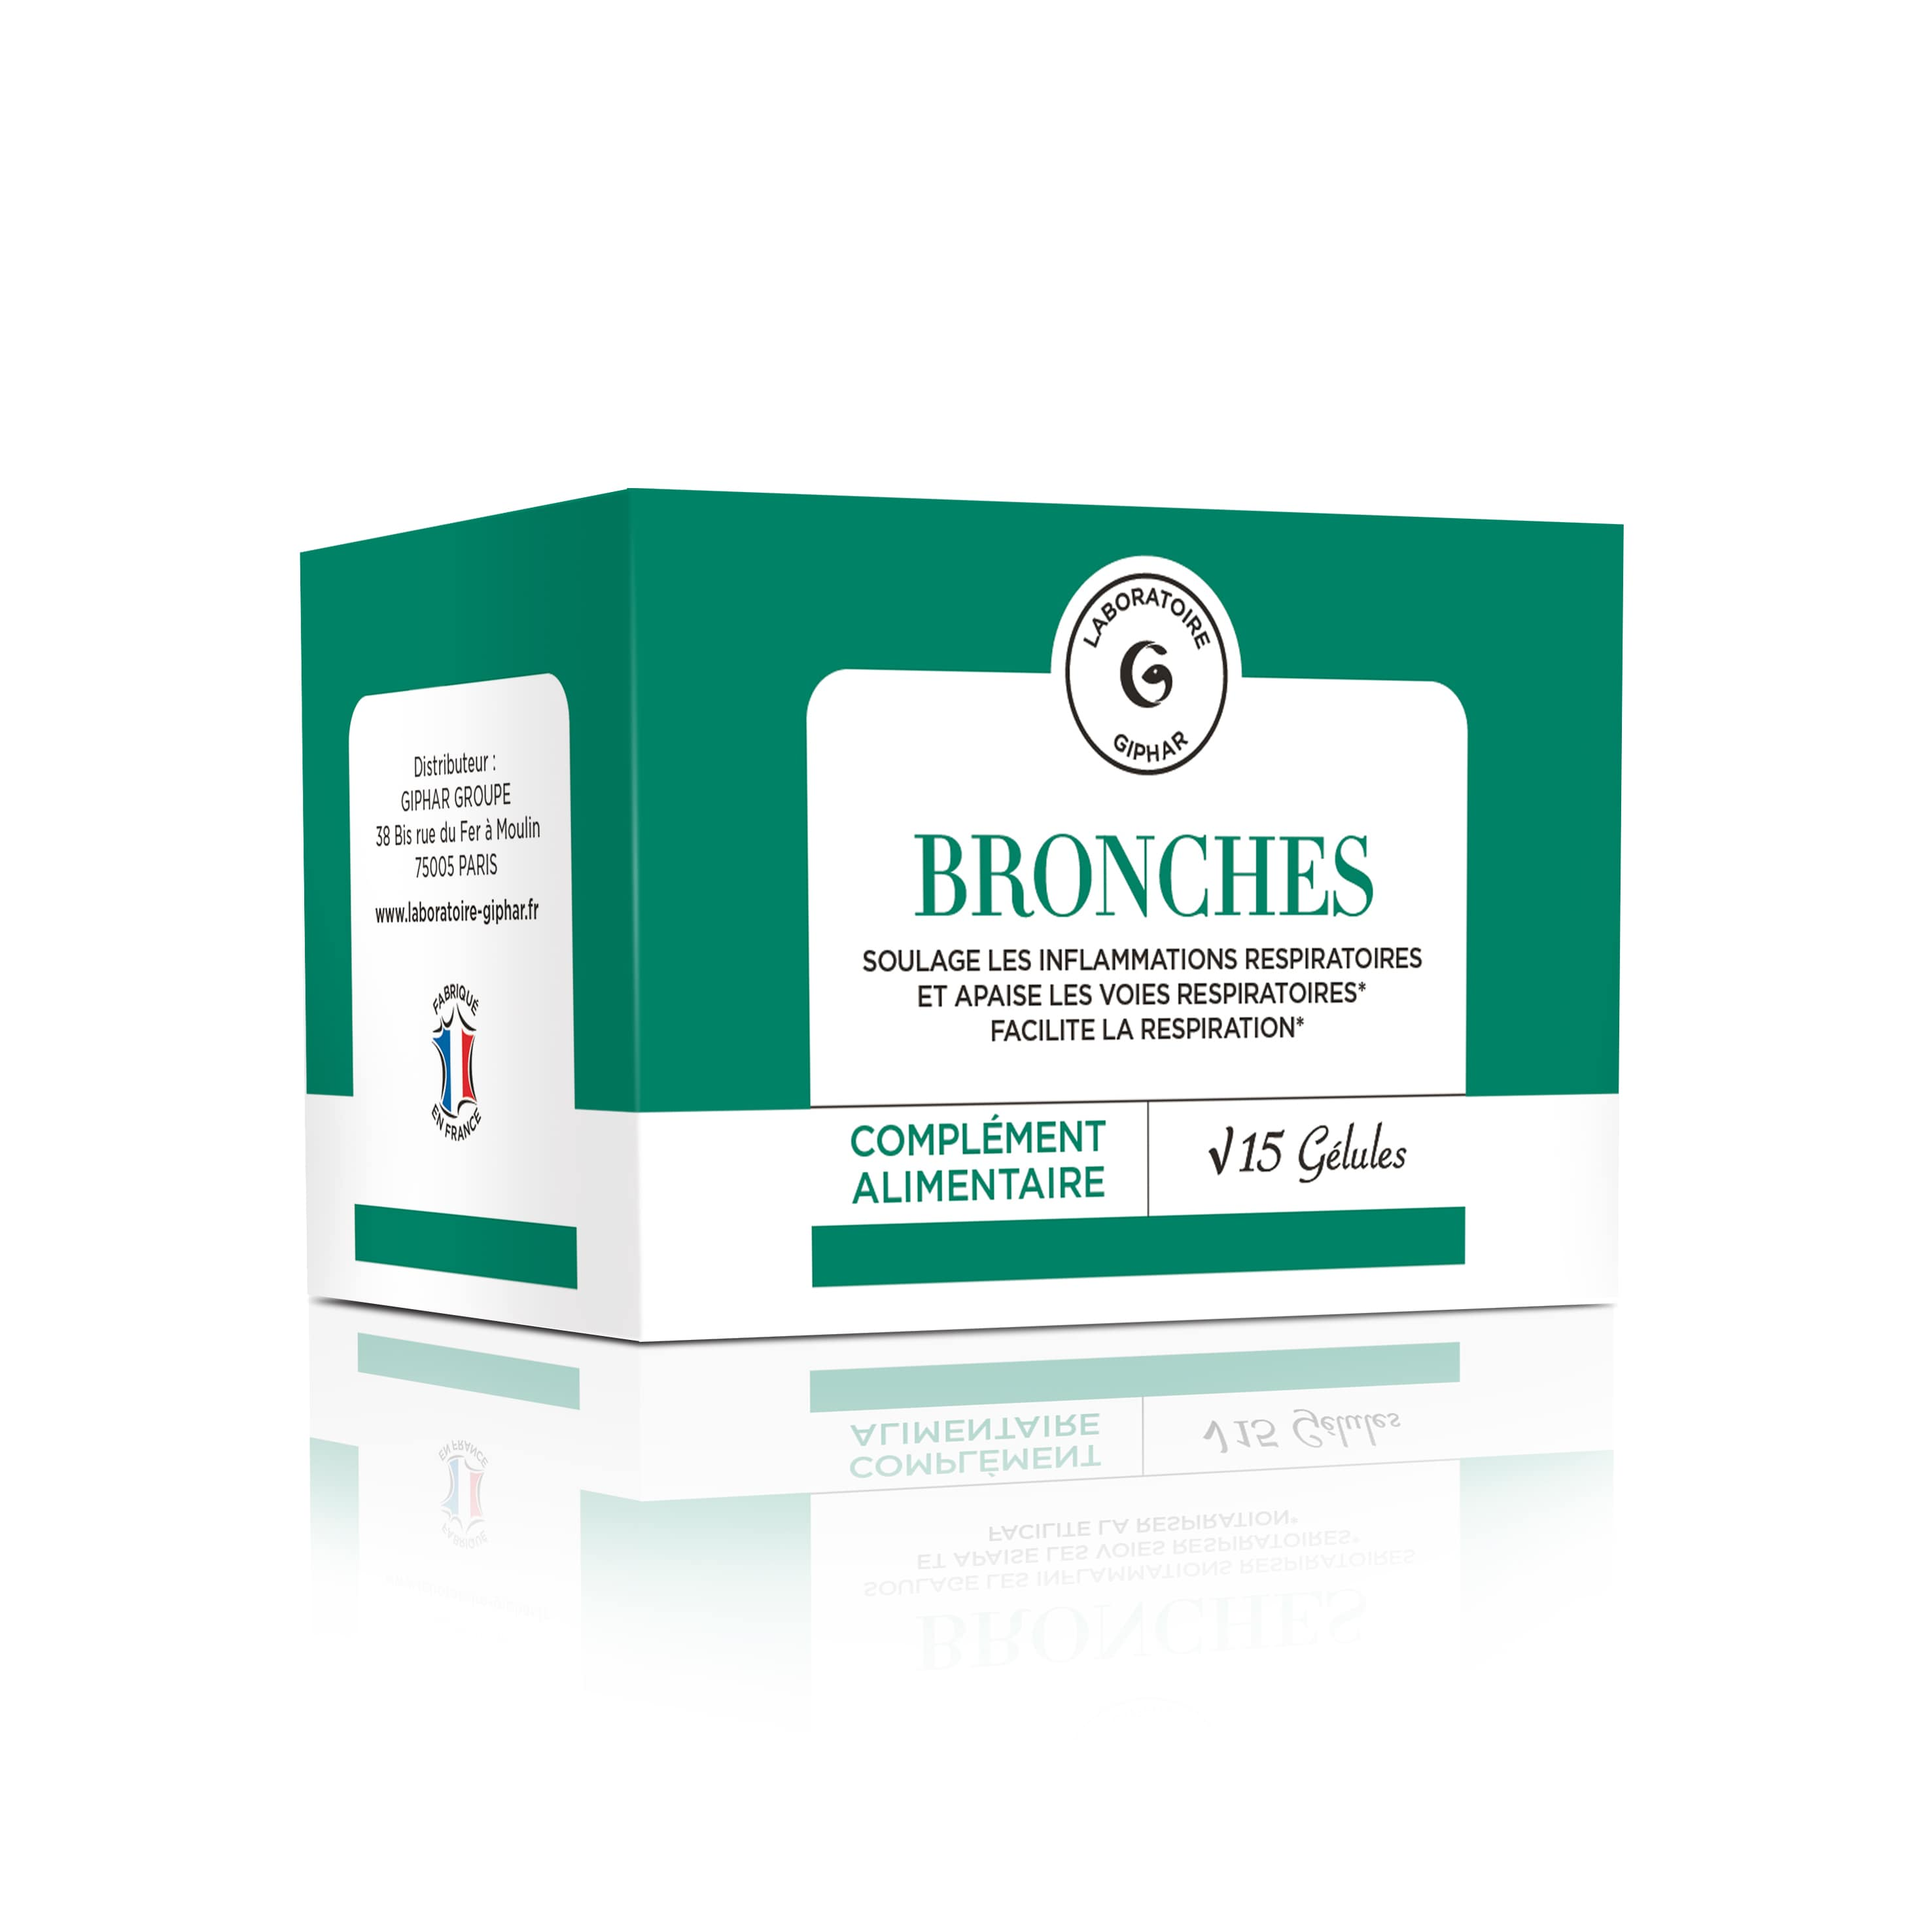 complément alimentaire bronches packaging